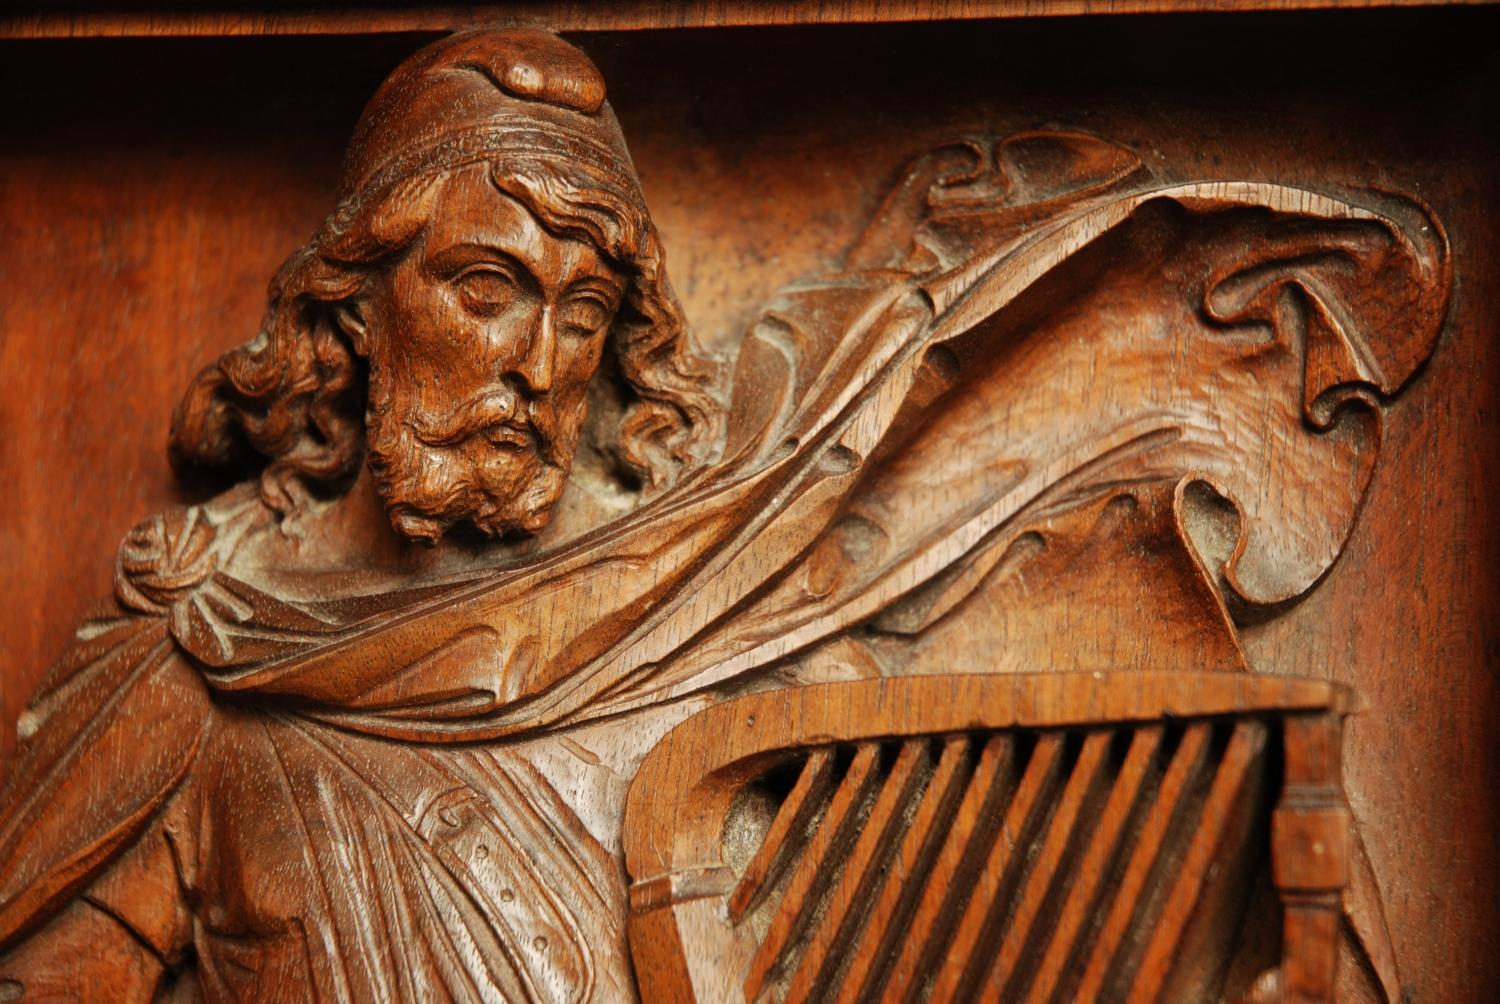 Thc carved walnut panel of medieval man in wood carvings